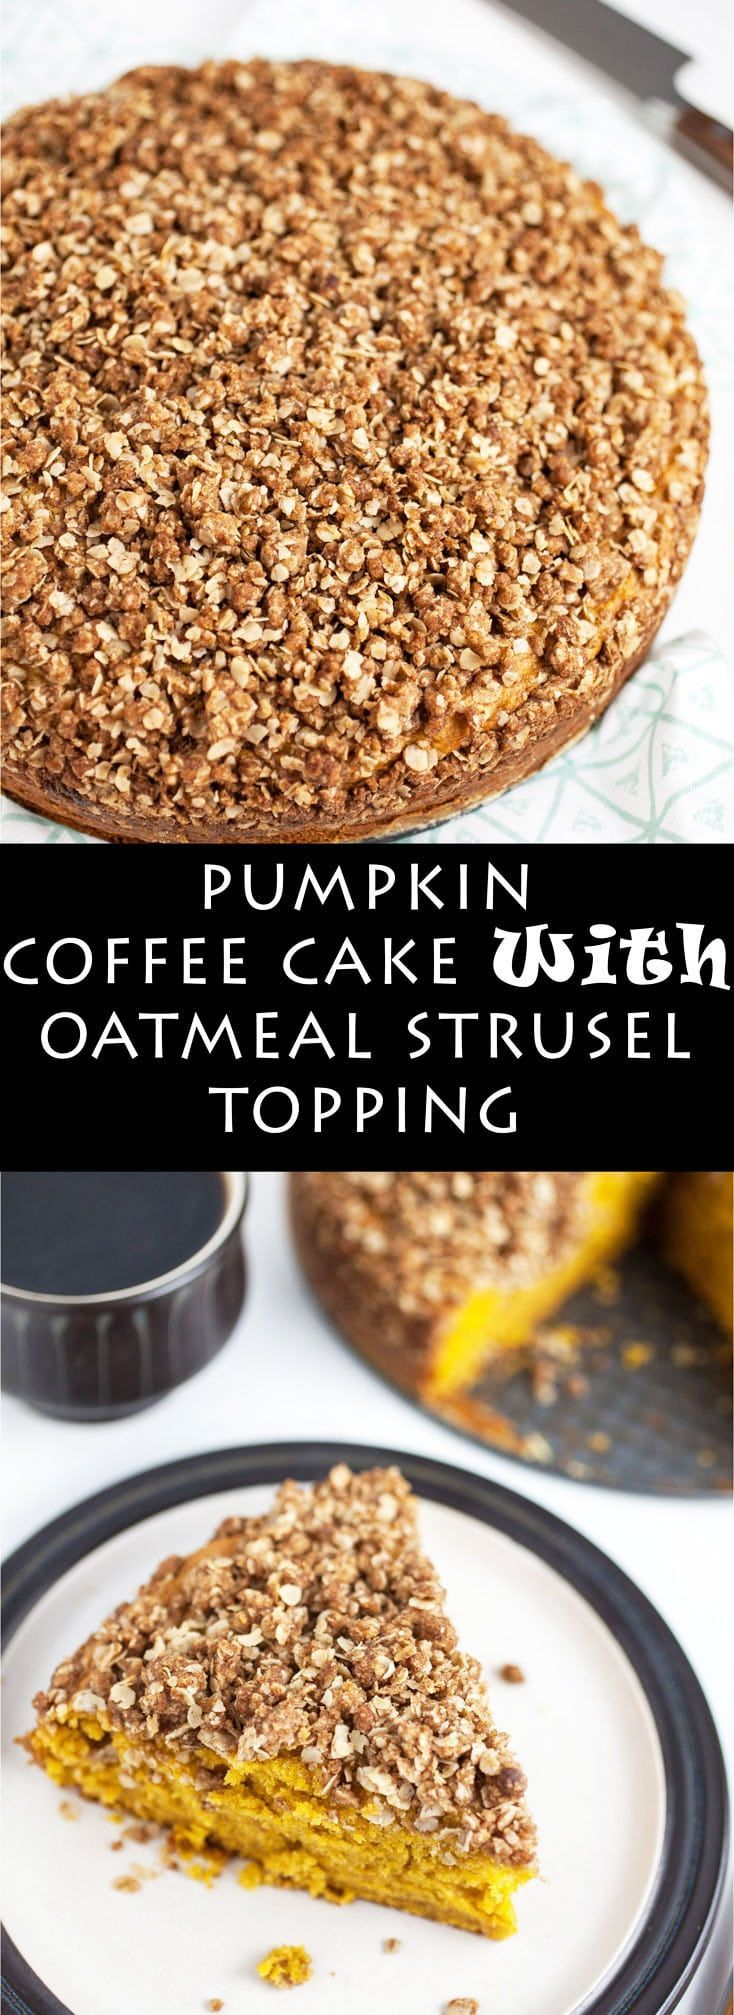 This Pumpkin Coffee Cake with Oatmeal Struesel Topping is the perfect fall breakfast or dessert! It's moist and fluffy, easy to make, and topped with a sweet cinnamon oatmeal topping. Crumbly struesel is the best! So good with a cup of coffee! #ad #flahavans #oatspiration